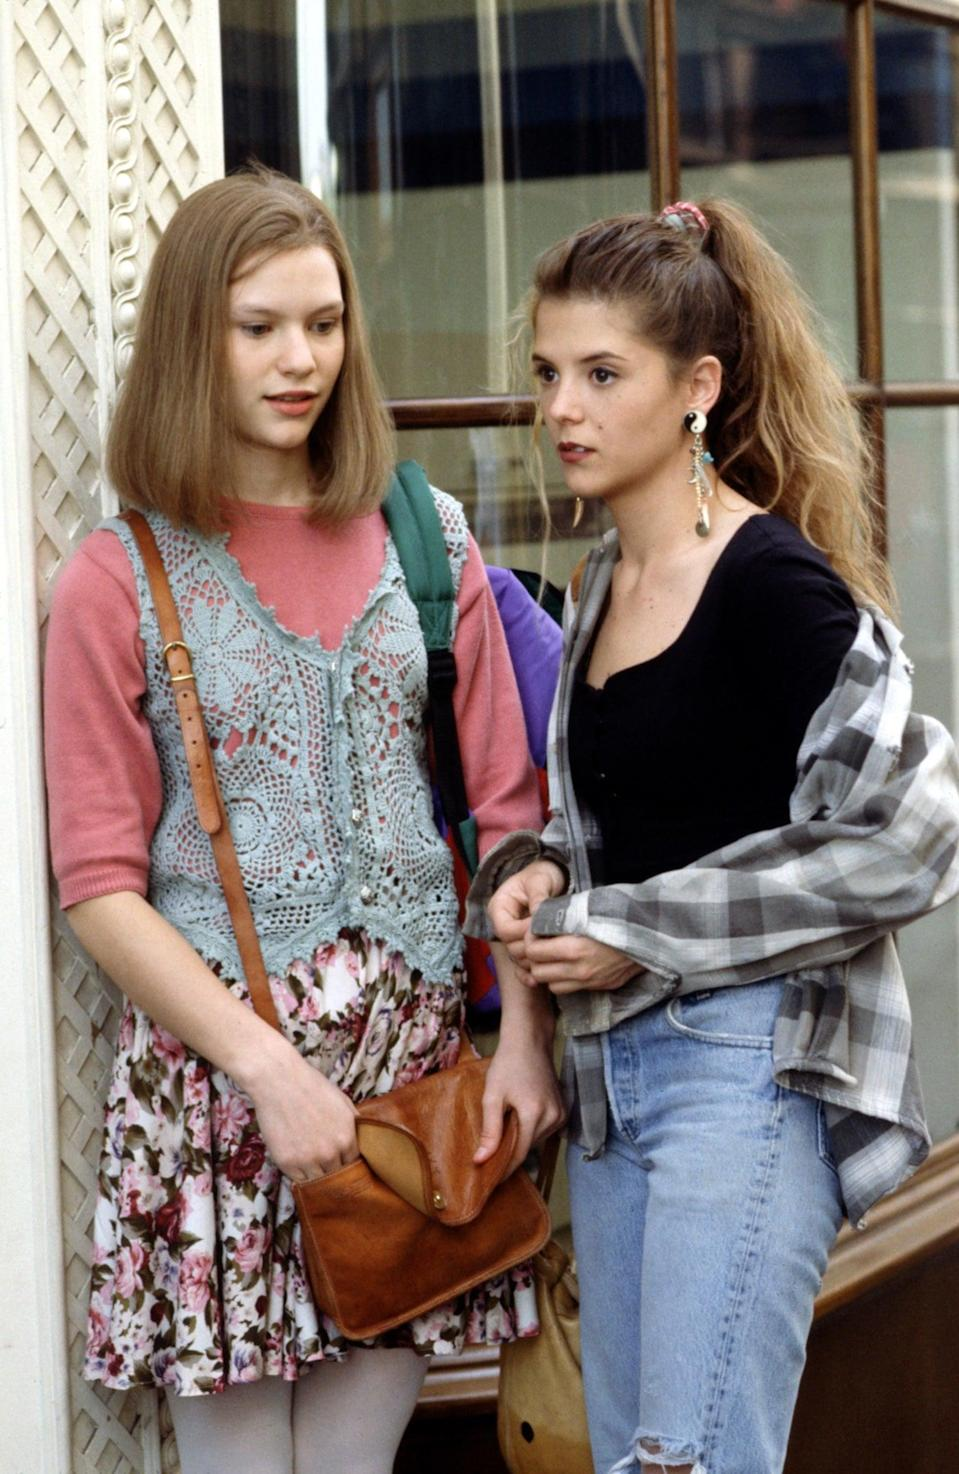 """<p>If you're going to be angsty teen Angela Chase from <b>My So-Called Life</b>, then you'll need lots of layers in pastels, florals, plaid, and crochet plus oversize striped sweaters. Bonus points if you <a href=""""https://www.popsugar.com/love/My-So-Called-Life-Quotes-22638410"""" class=""""link rapid-noclick-resp"""" rel=""""nofollow noopener"""" target=""""_blank"""" data-ylk=""""slk:memorize some of her best quotes"""">memorize some of her best quotes</a>.</p>"""